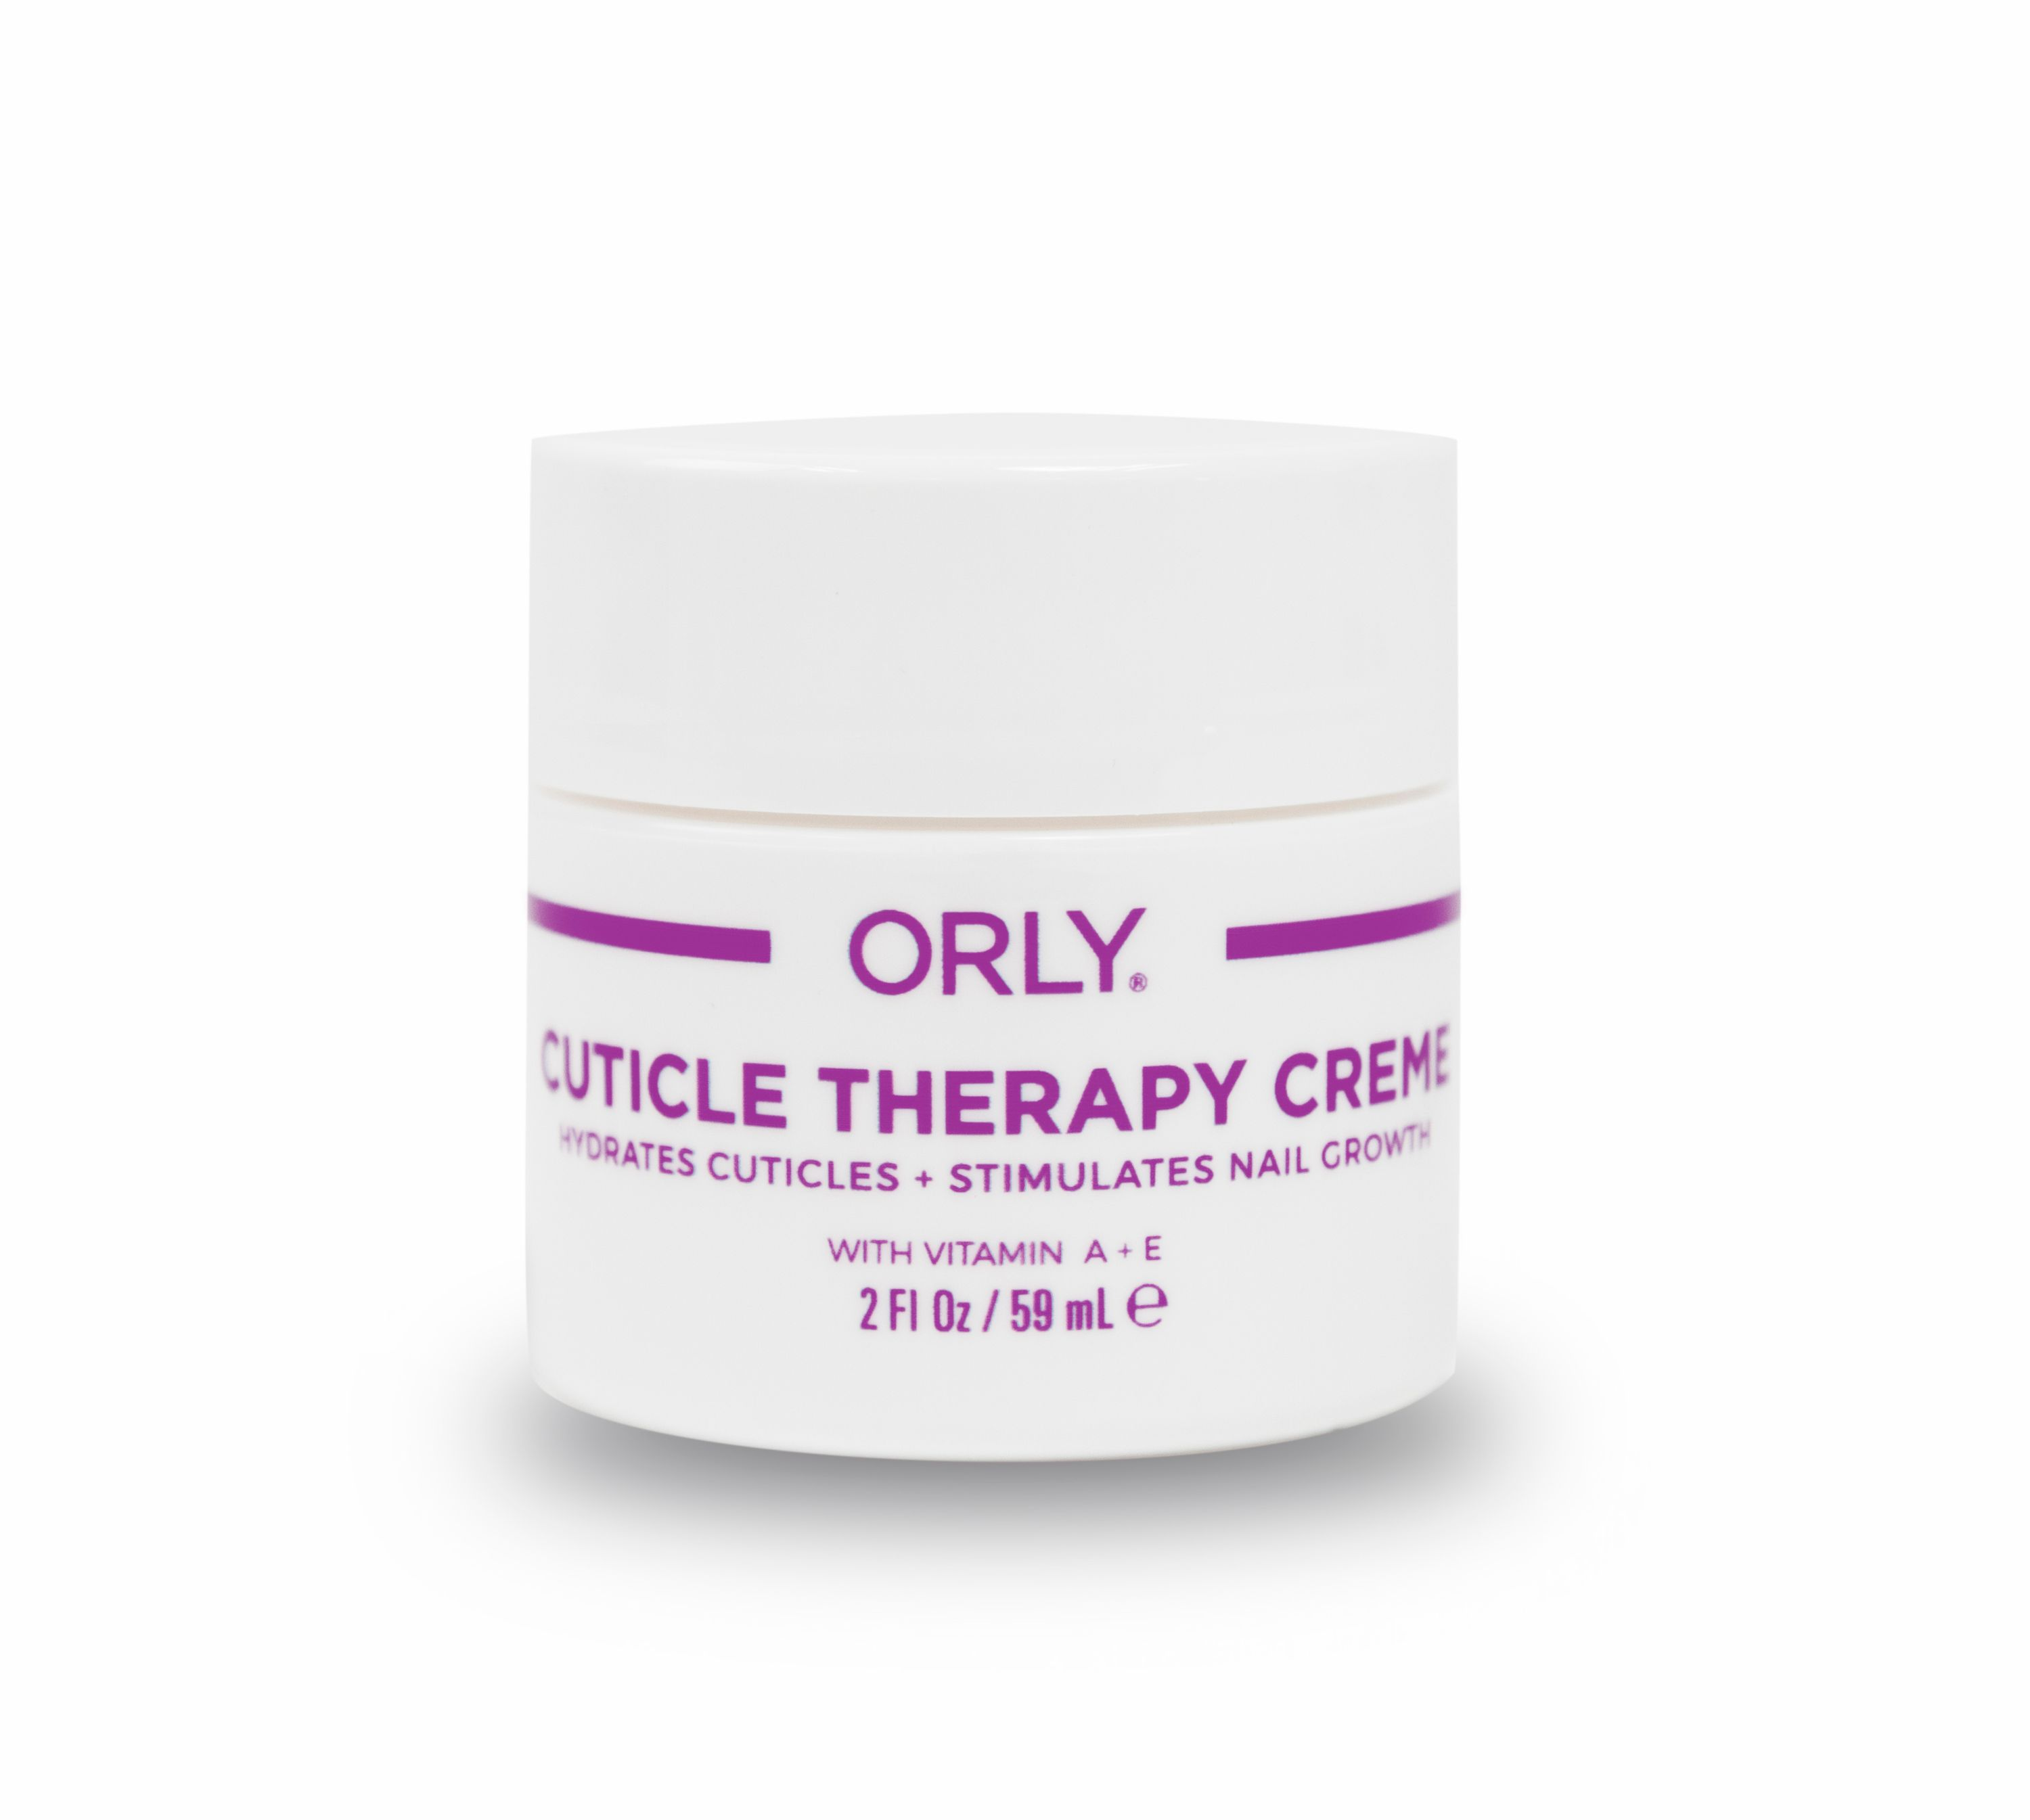 ORLY Cuticle Therapy Crème Nagelhautpflege